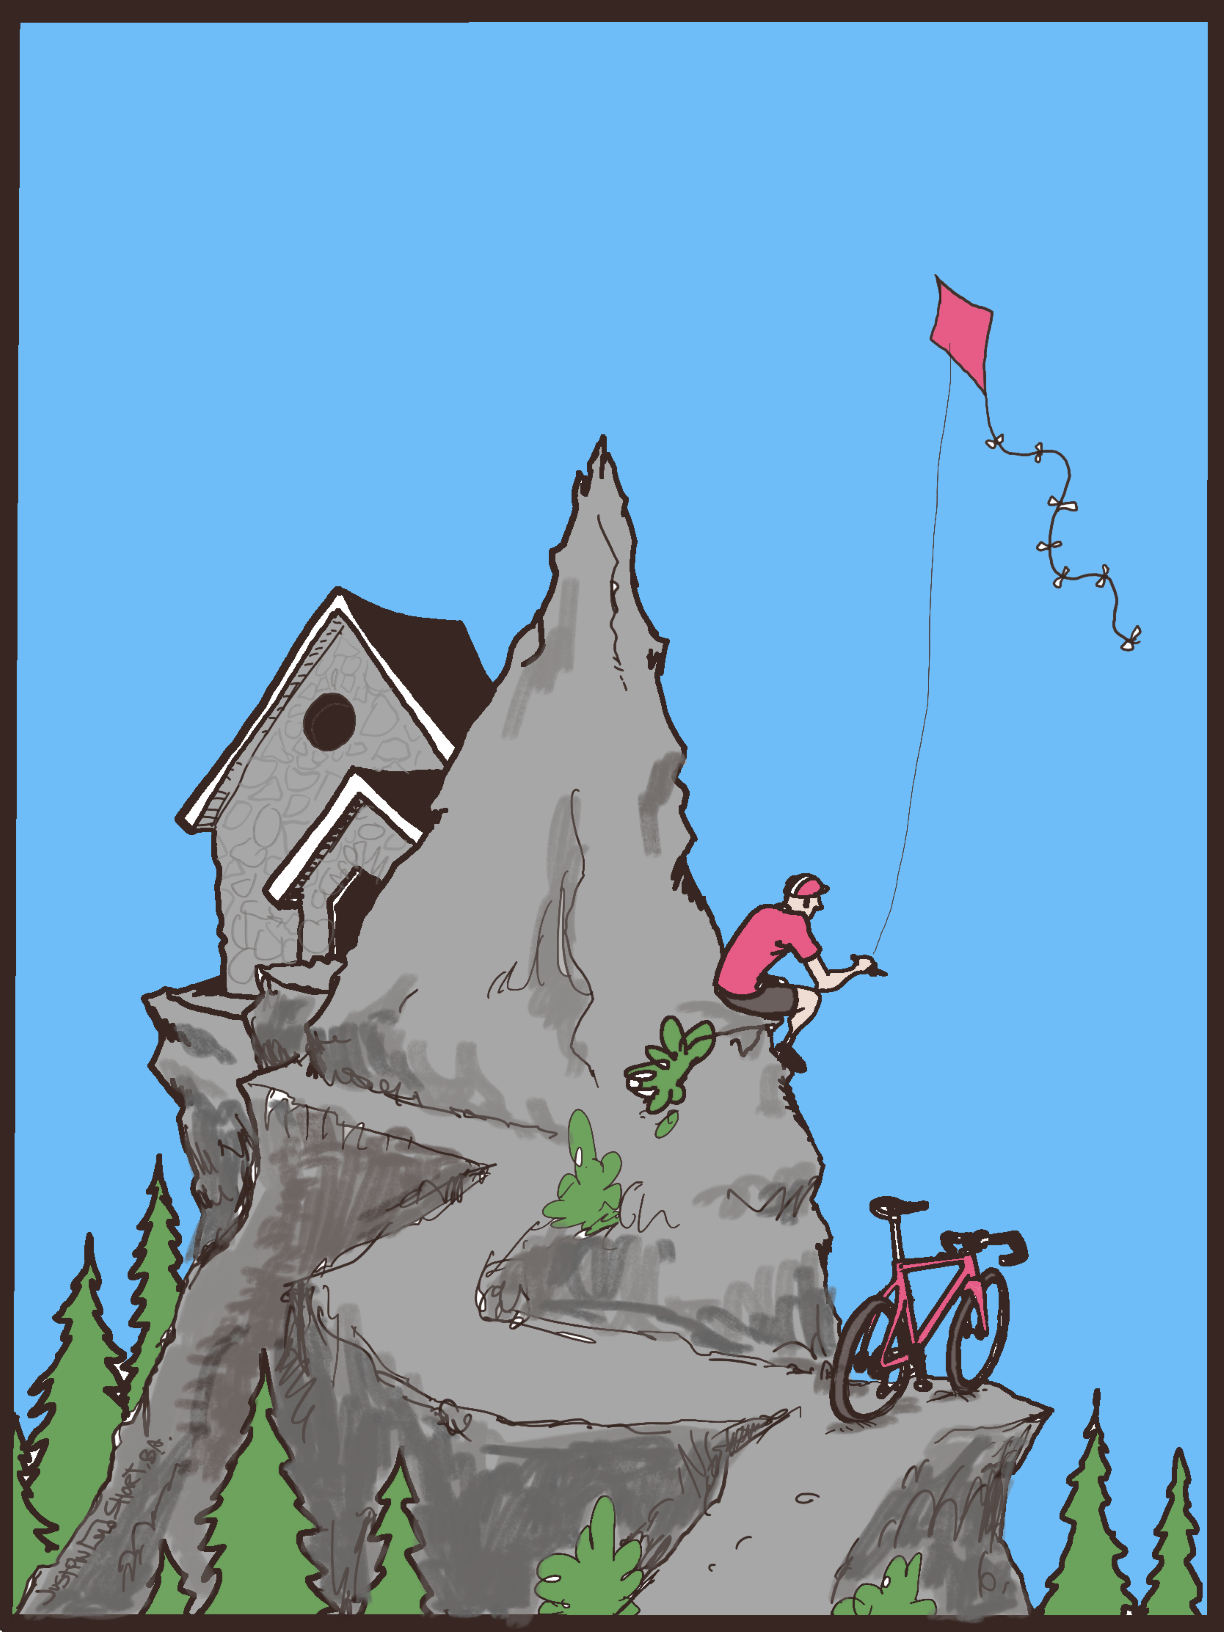 Illustration by Justin Short of a man flying a kite on a mountain ledge.